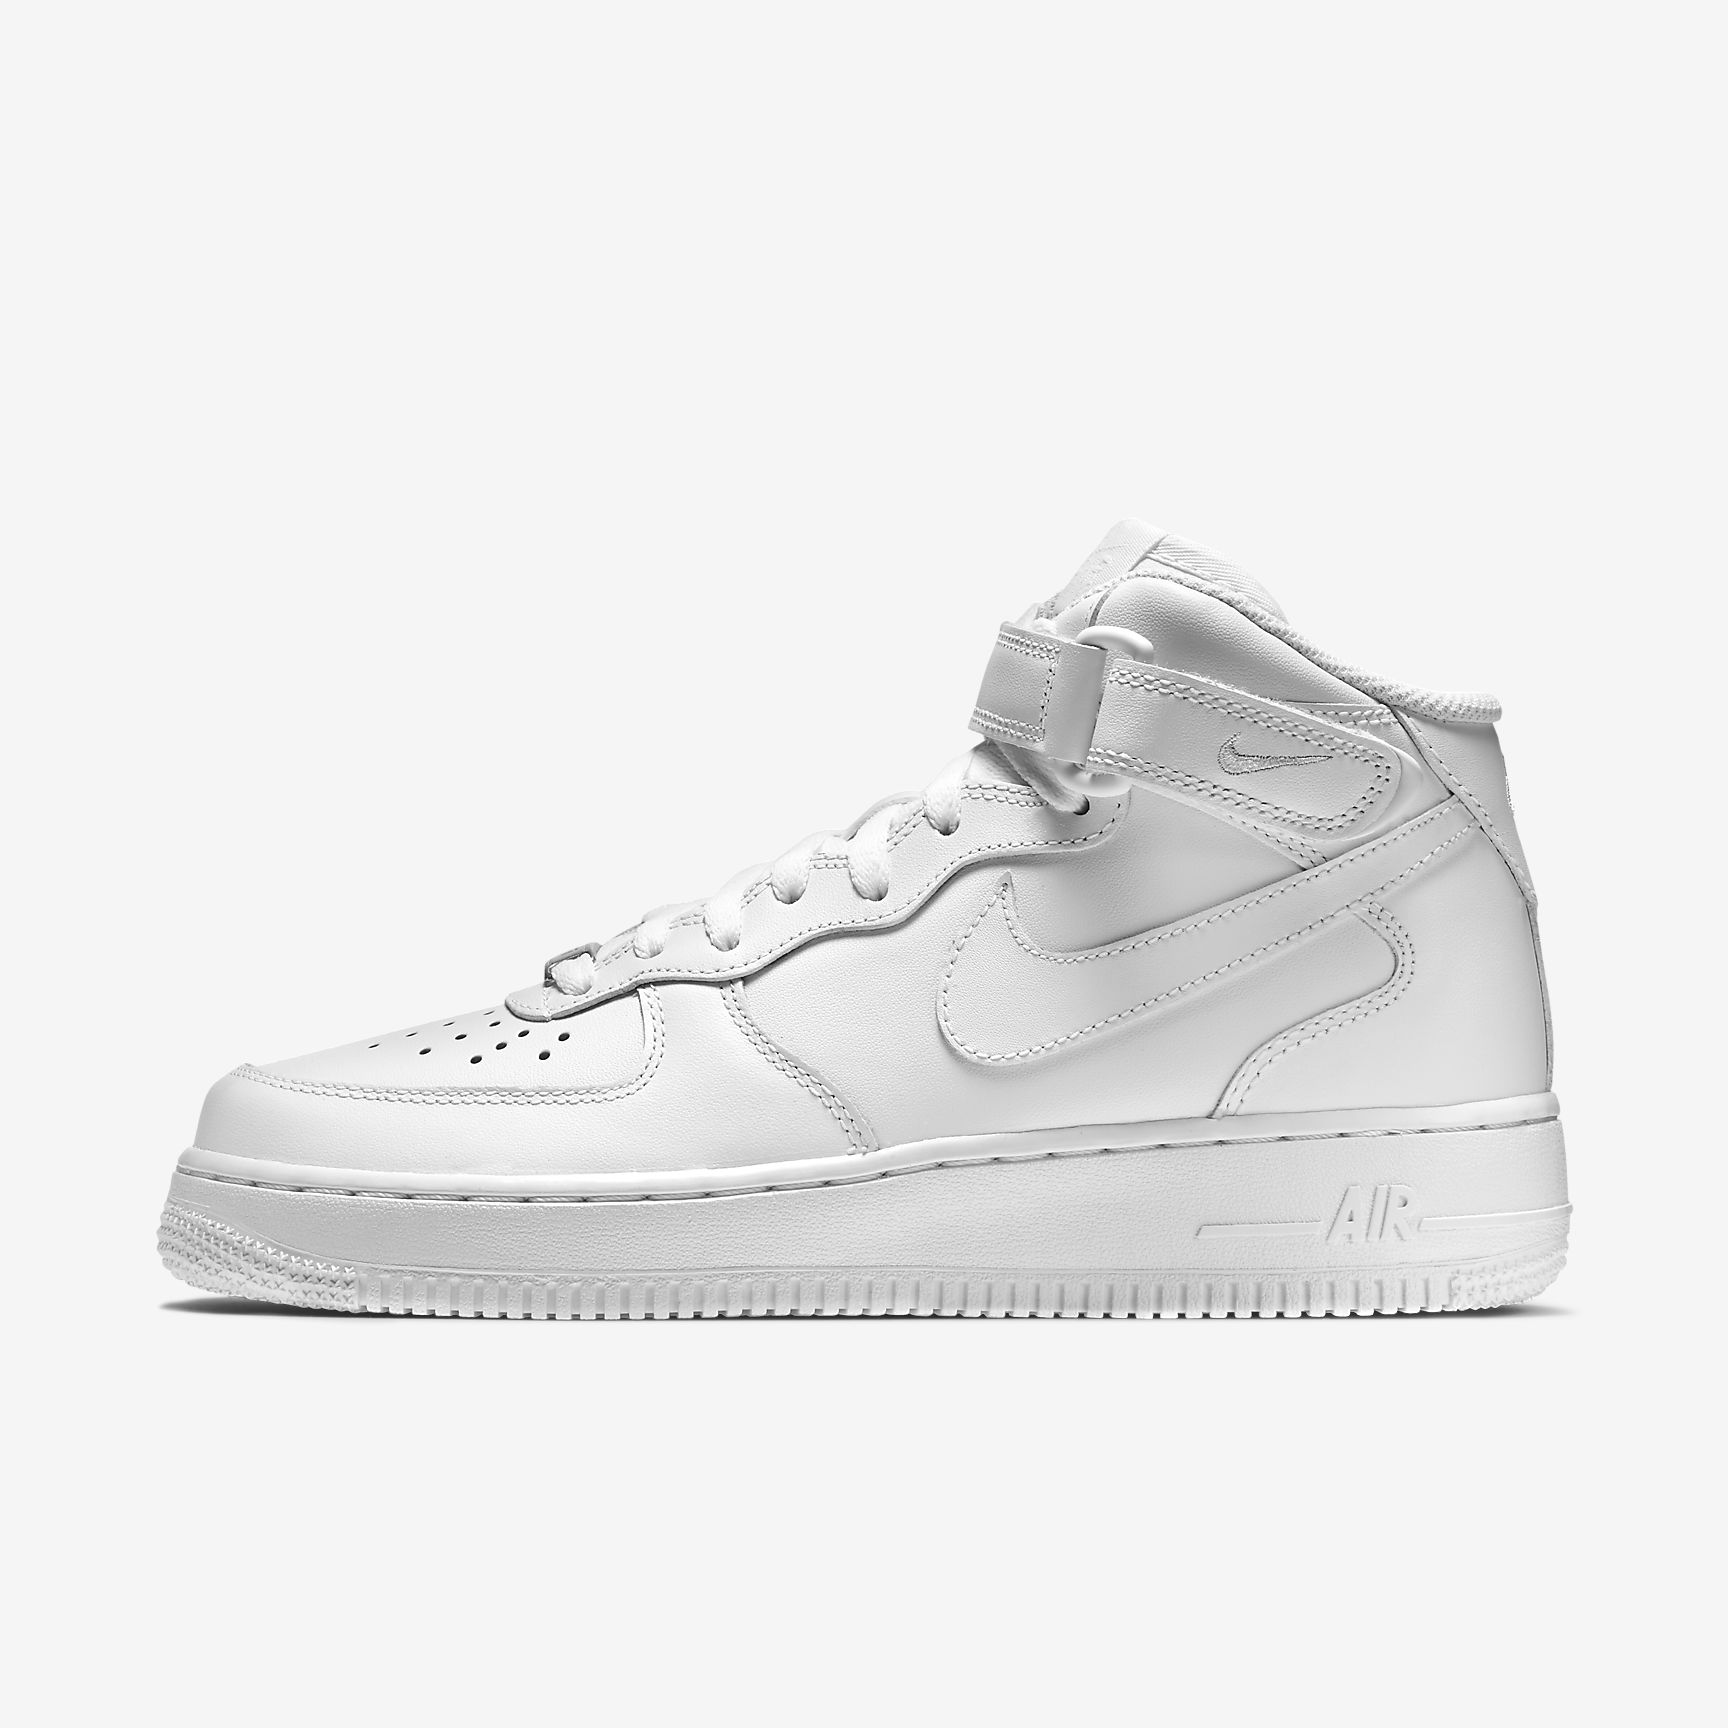 White Nike Air Force 1 Mid